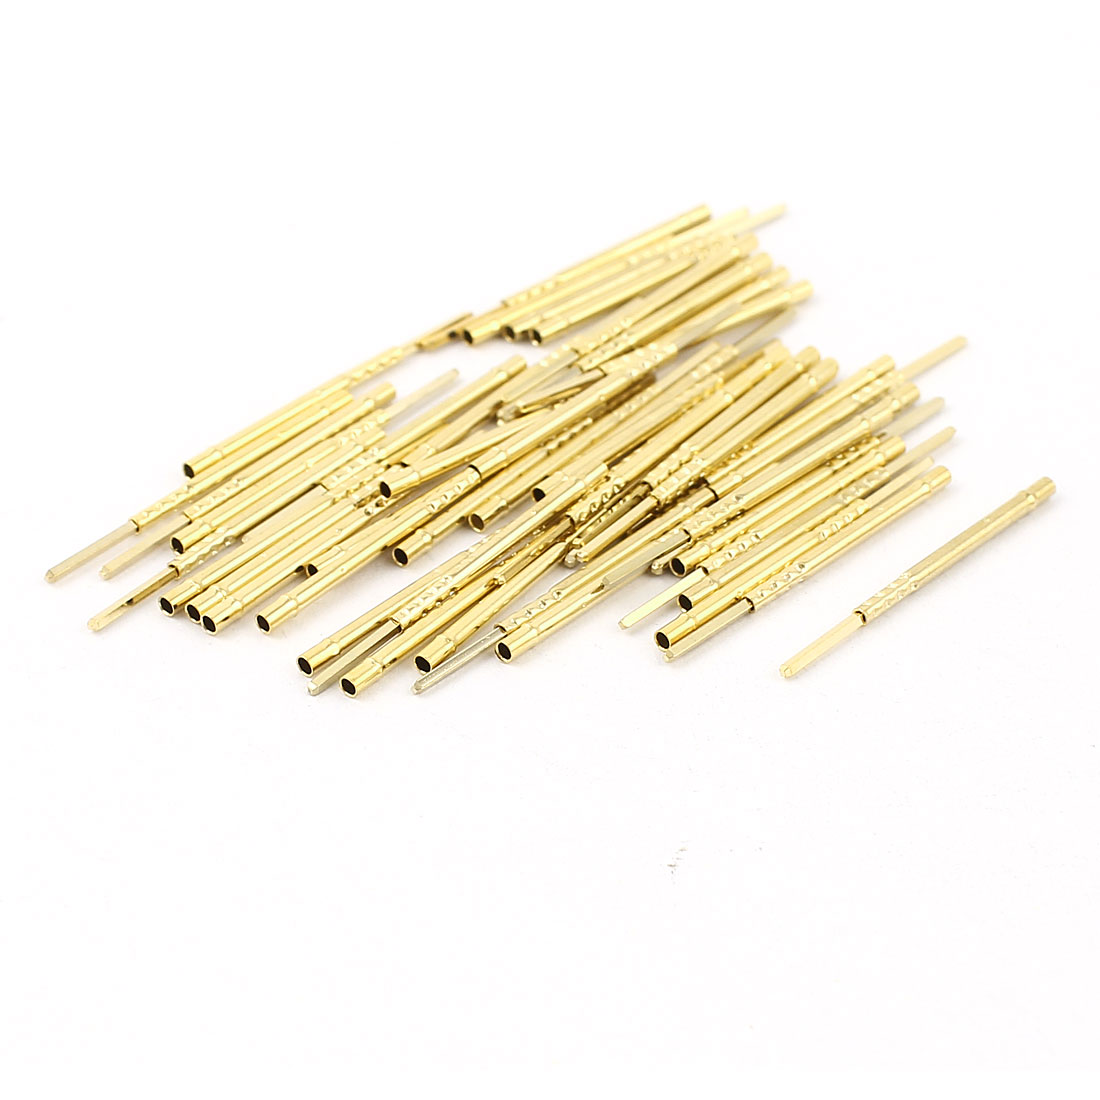 50 Pcs R75-2W 1.32mm Dia Testing Probe Pin Receptacles Gold Tone